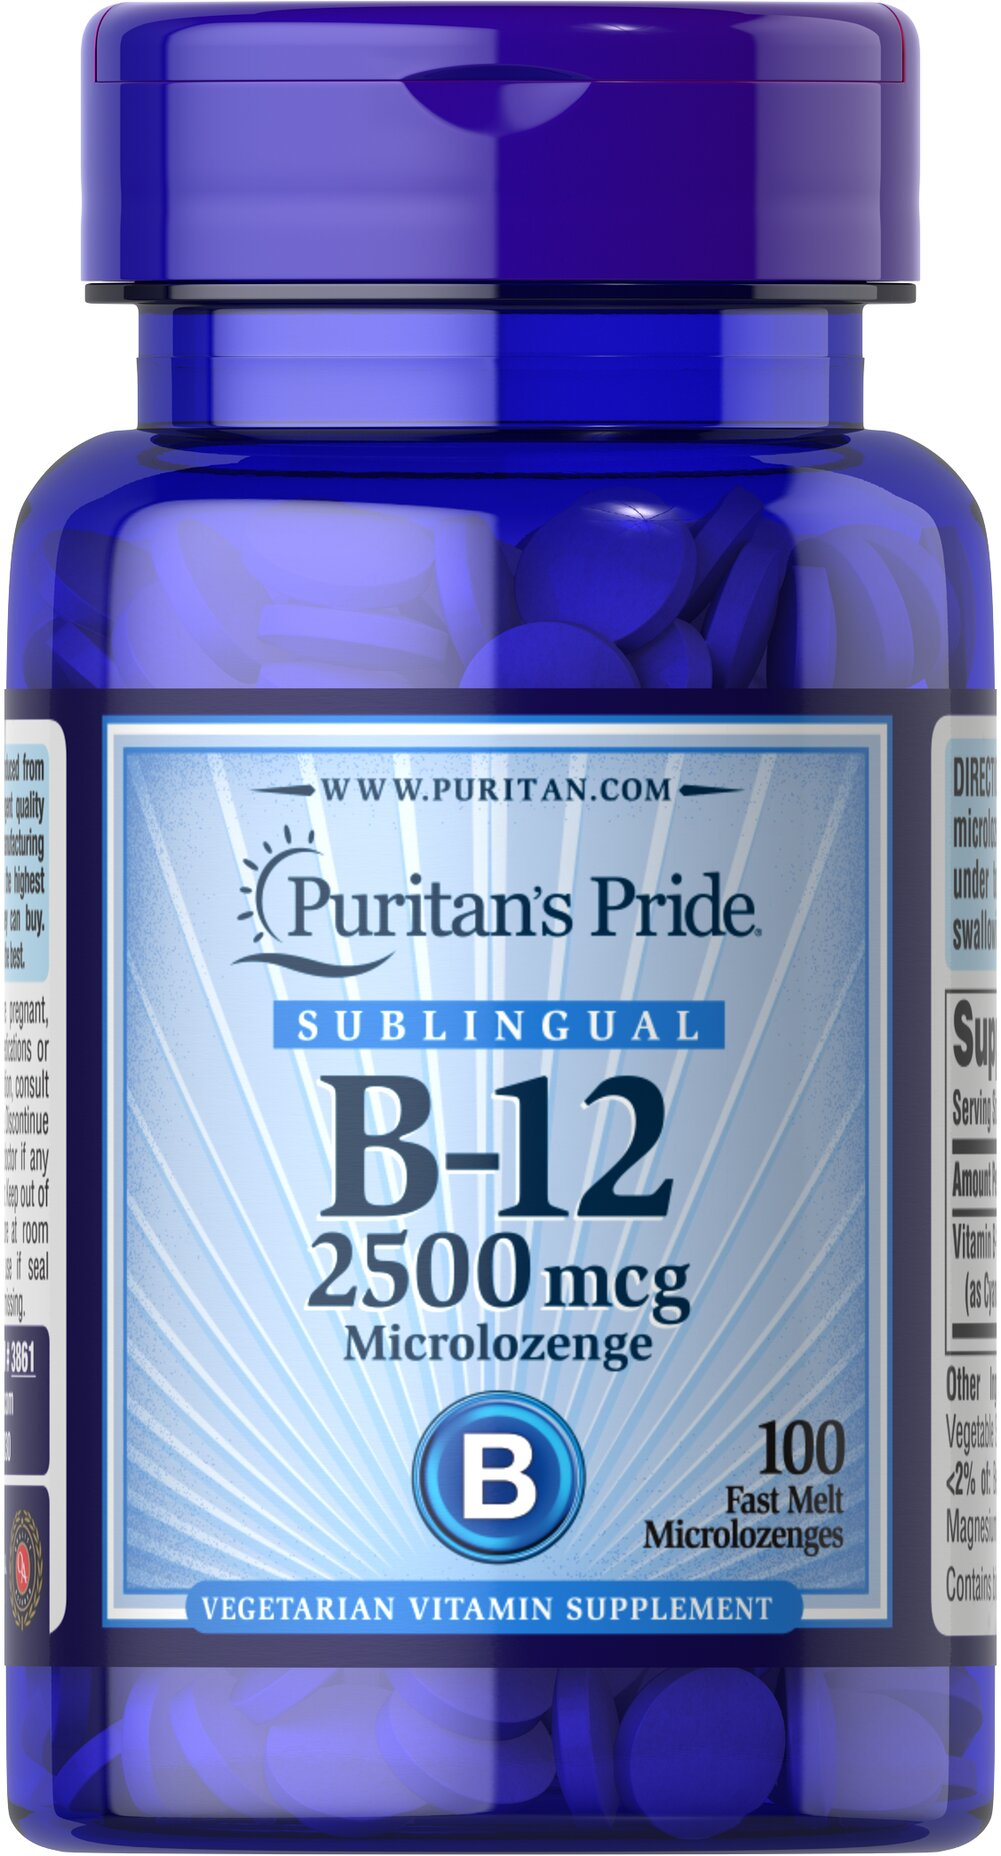 Vitamin B-12 2500 mcg Sublingual  100 Microlozenges 2500 mcg $9.99